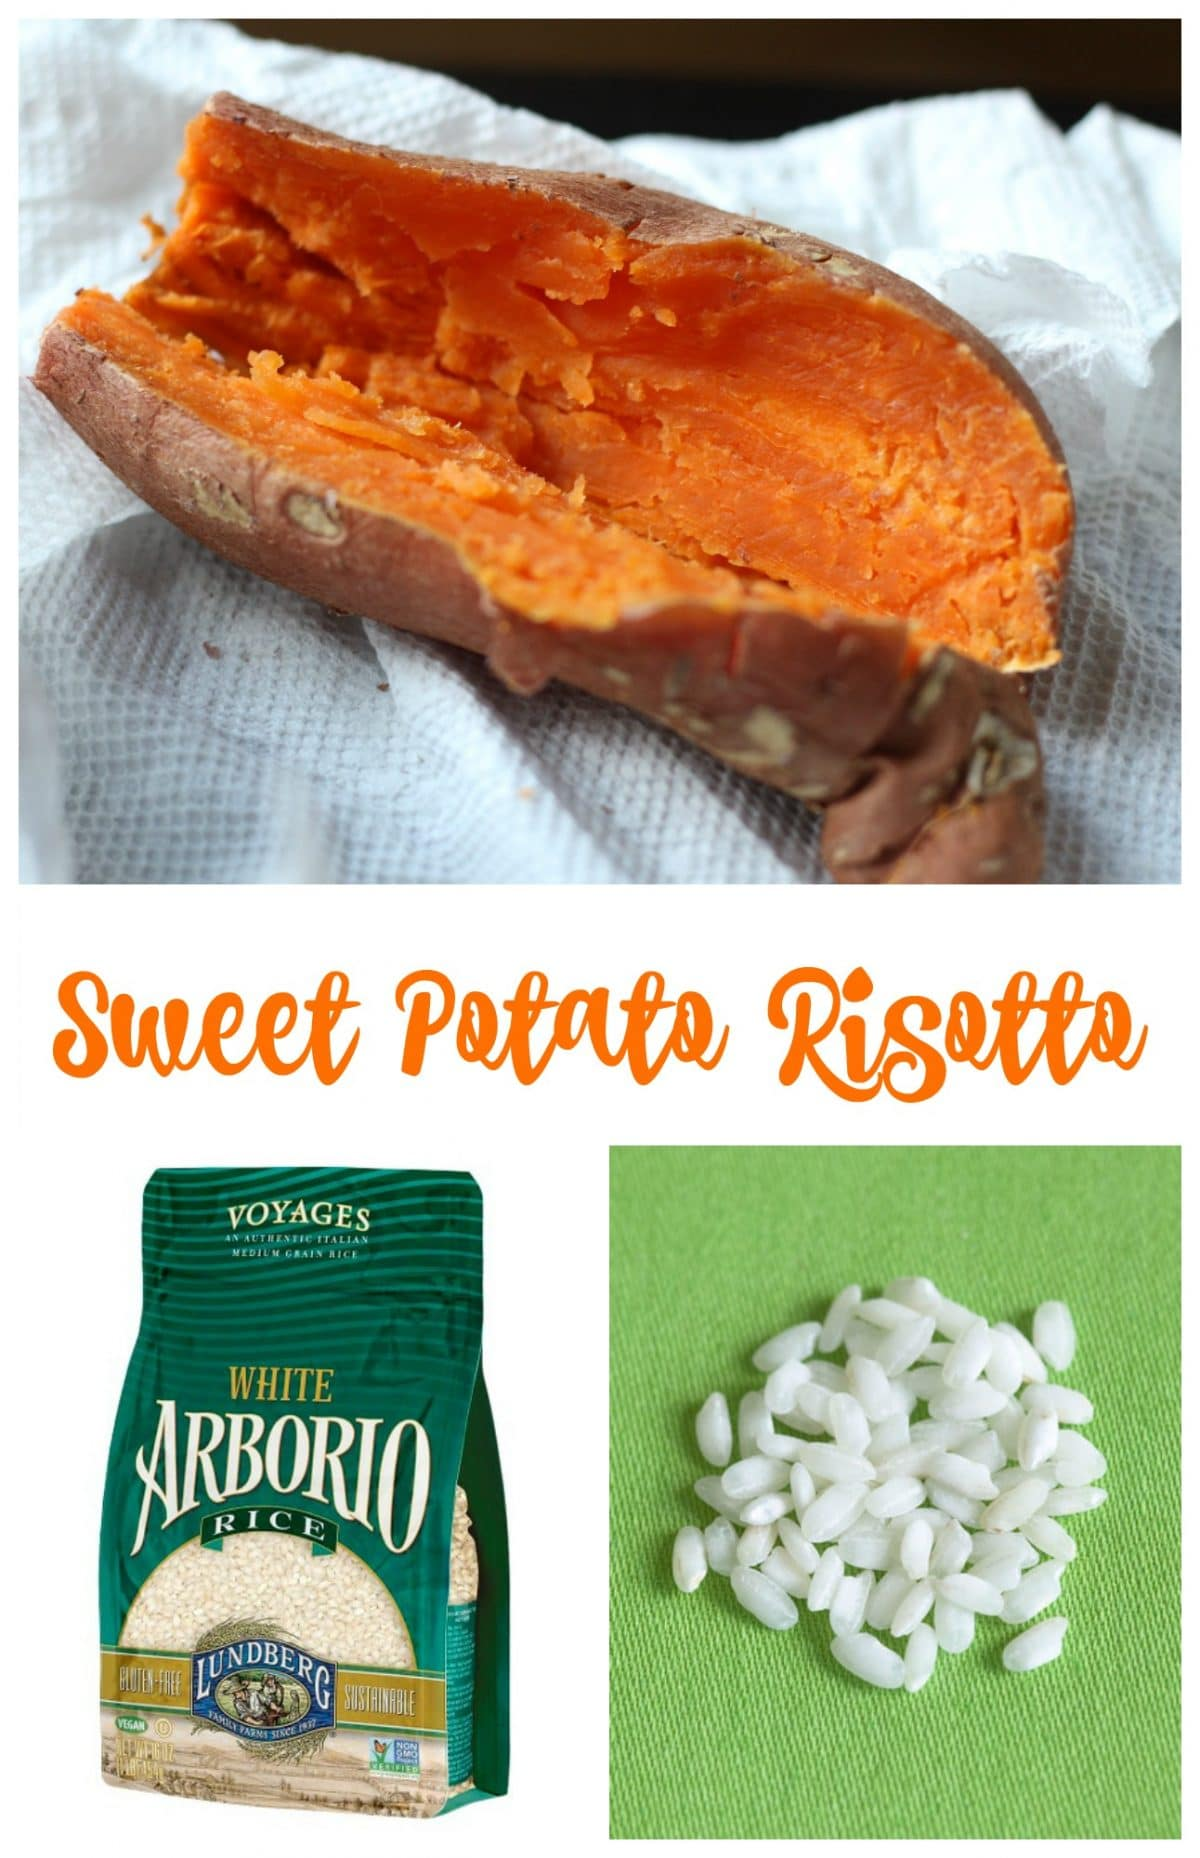 Sweet Potato Risotto || Erin Brighton | gluten free recipes | vegetarian | easy dinners | one pot meals